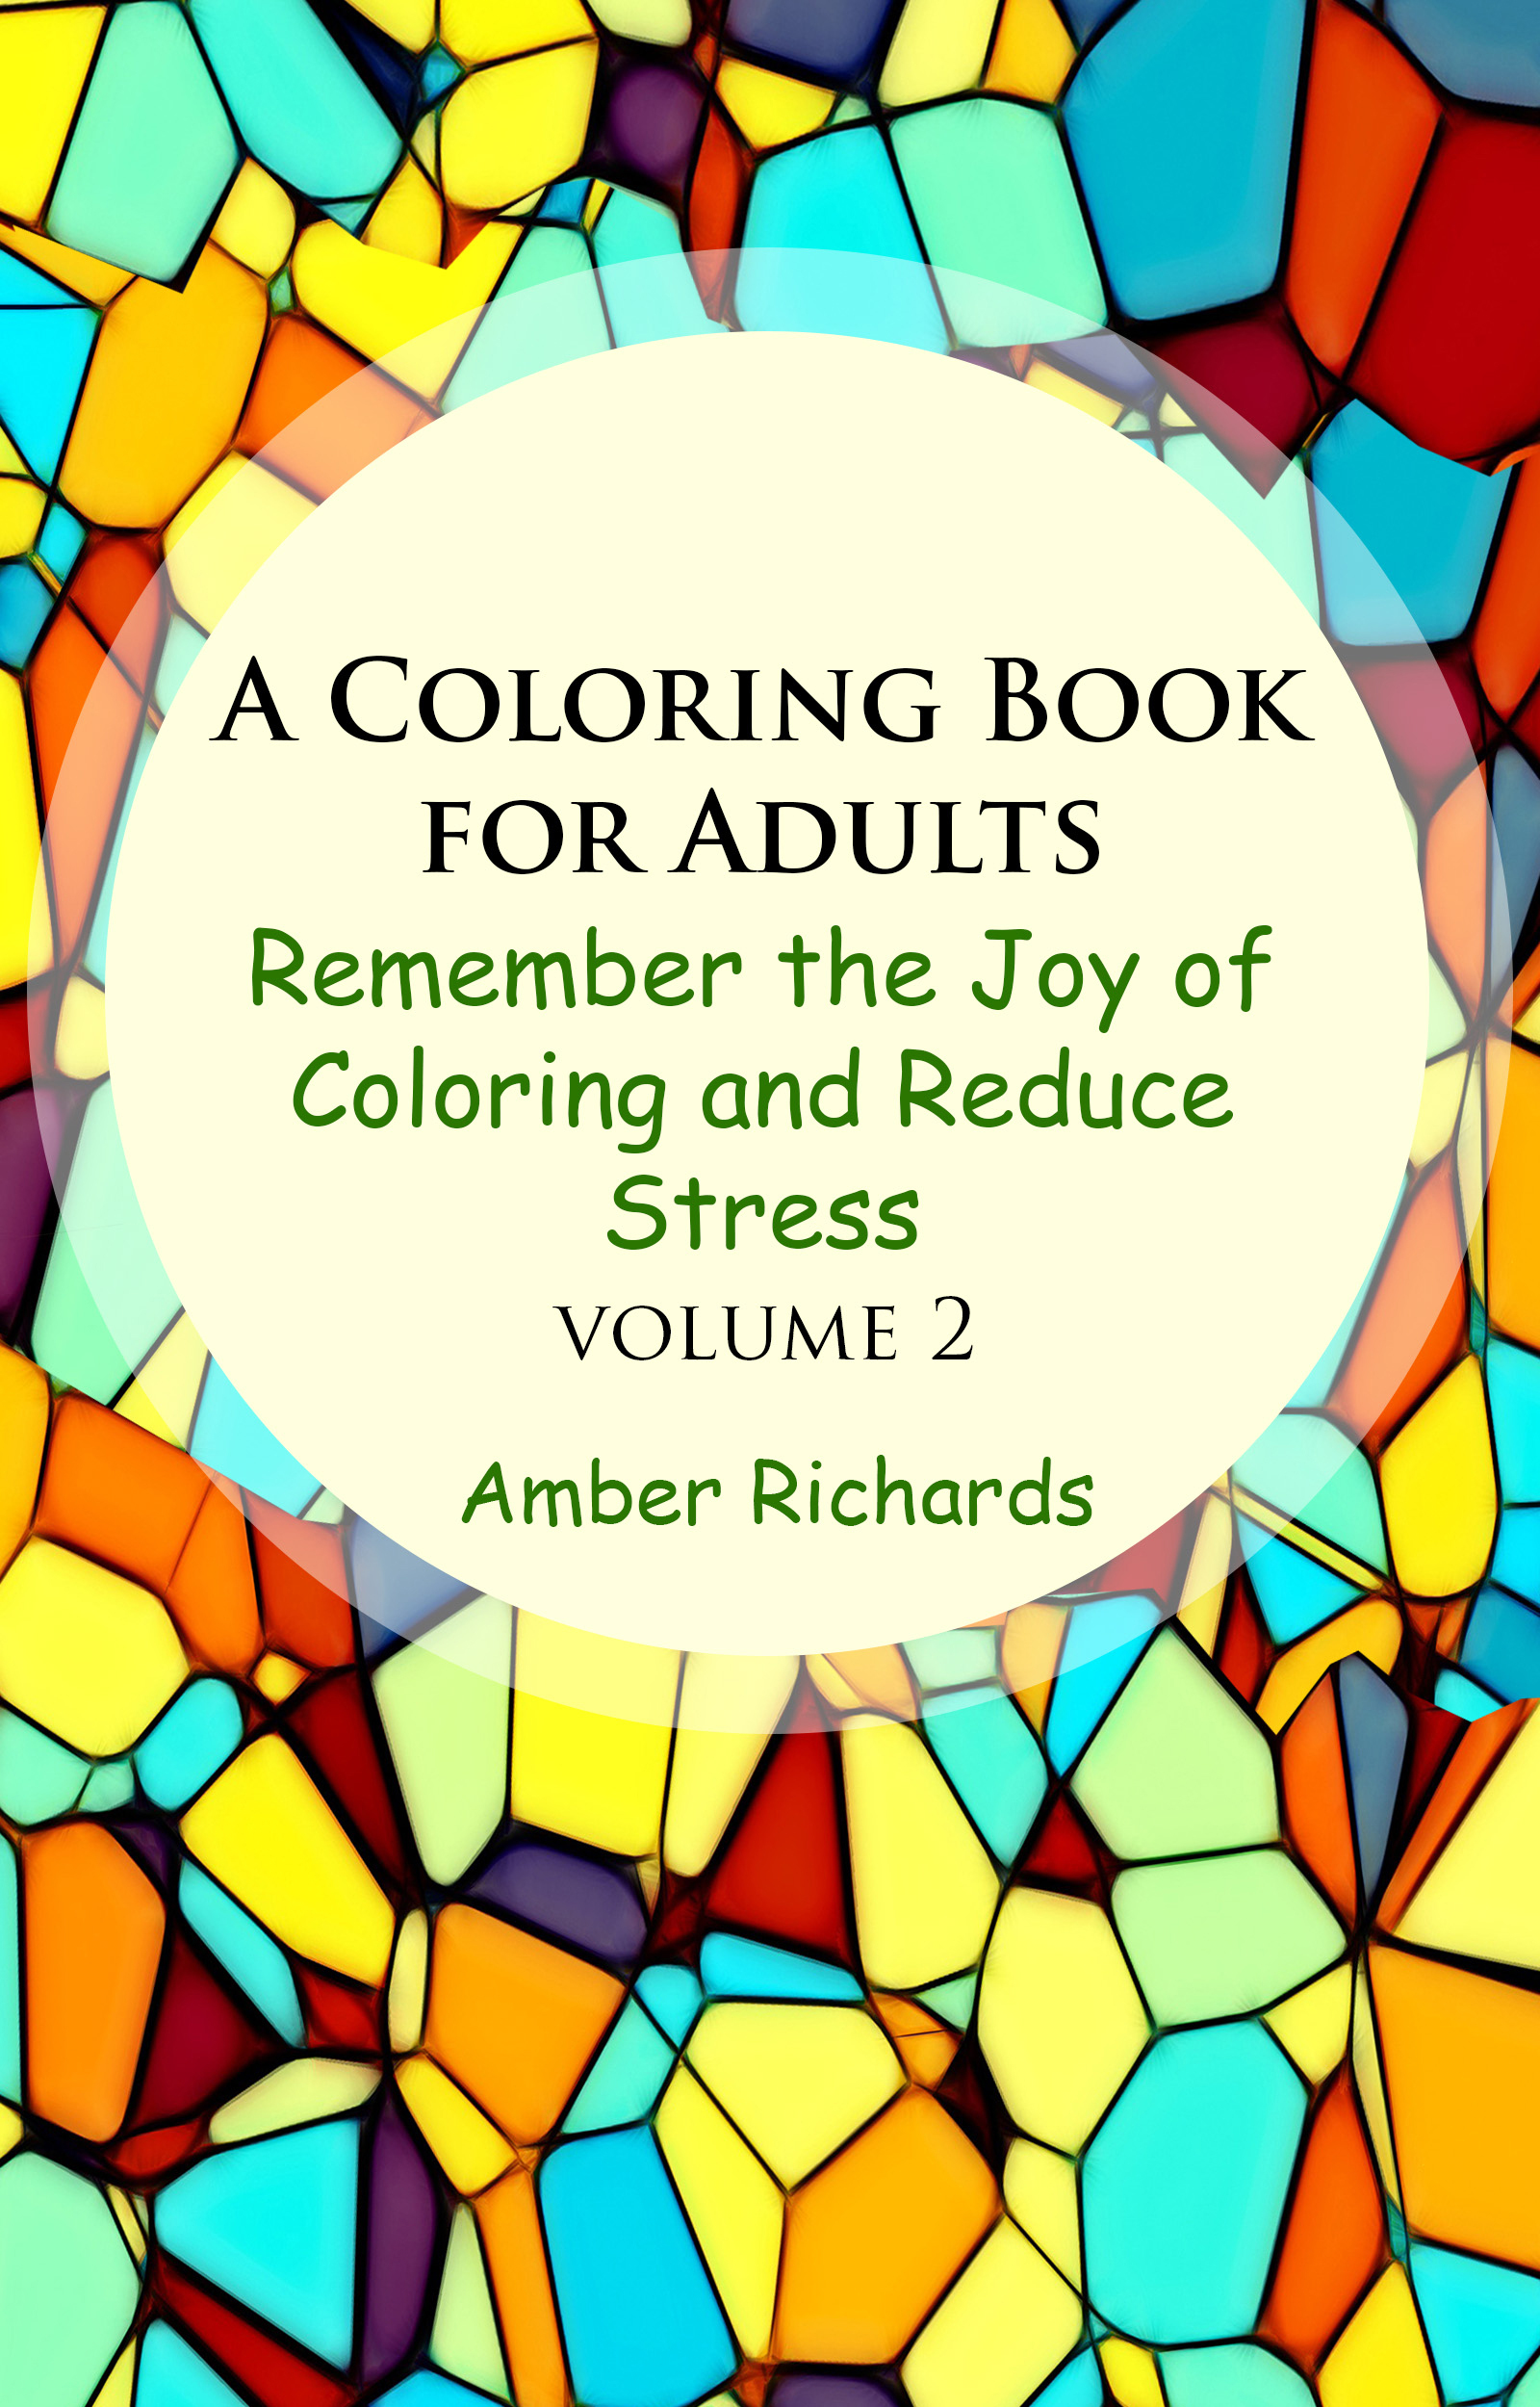 A Coloring Book for Adults: Remember the Joy of Coloring and Reduce Stress (Volume 2)